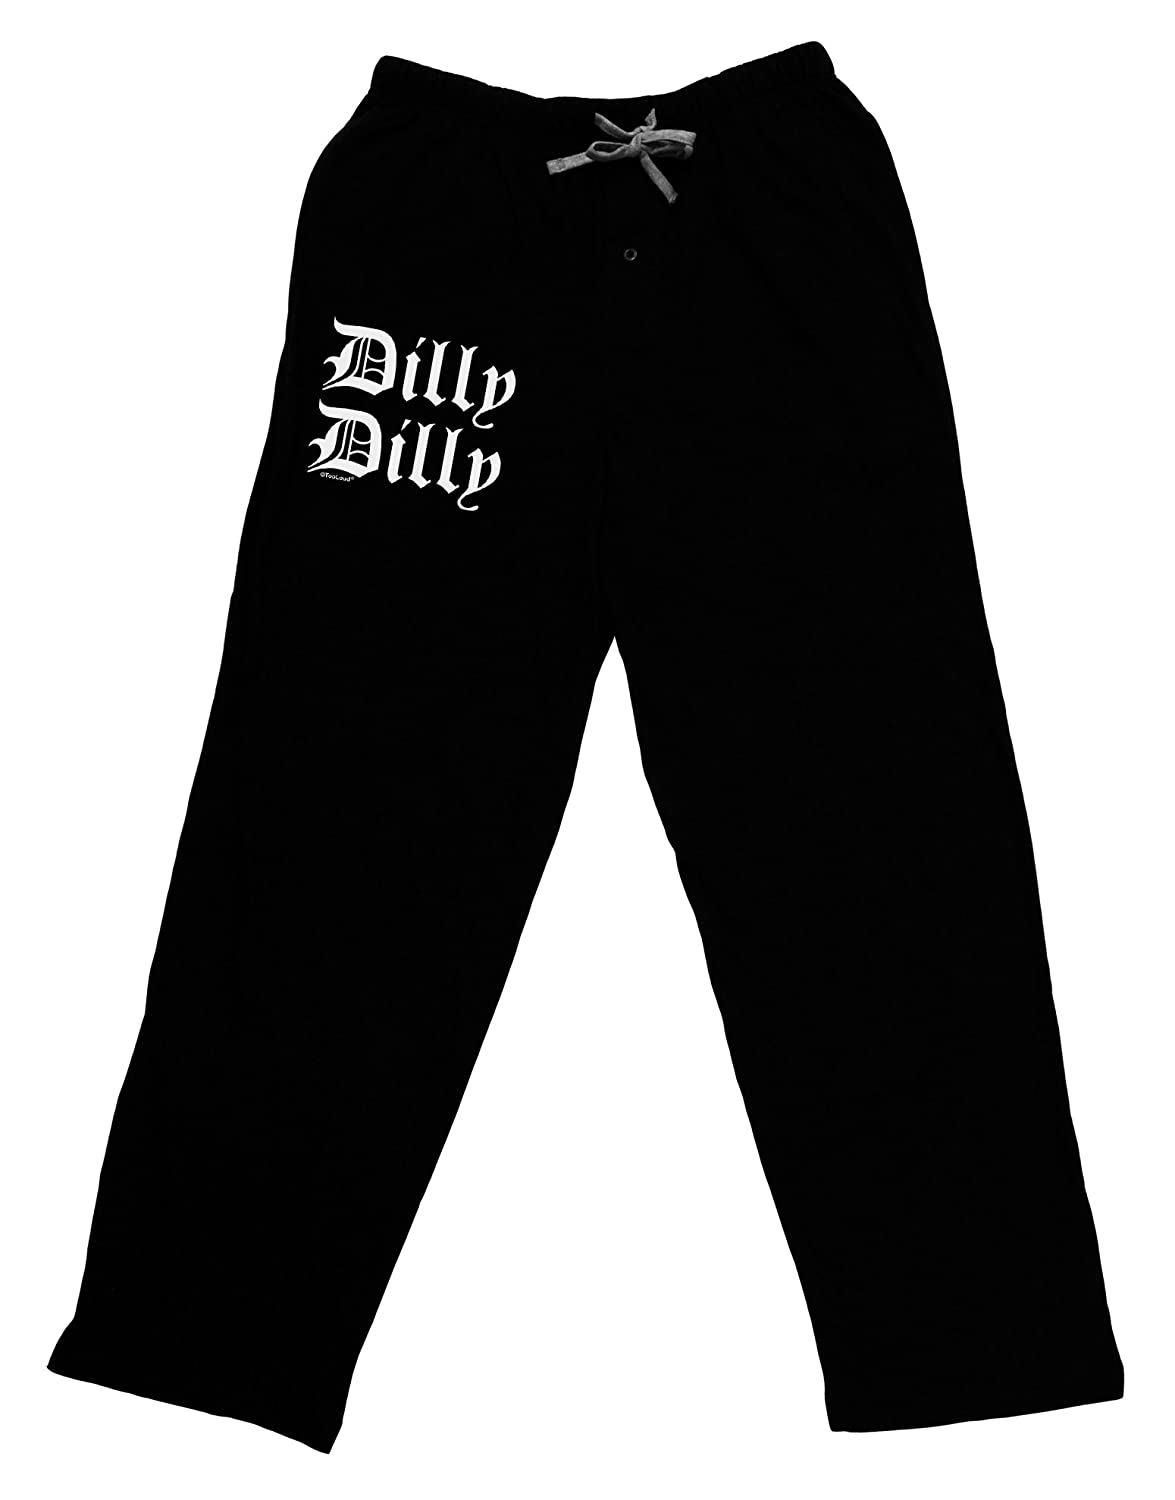 TOOLOUD Dilly Dilly Beer Drinking Funny Adult Lounge Pants L-PO115W-TD-DRKLNGPNT-P